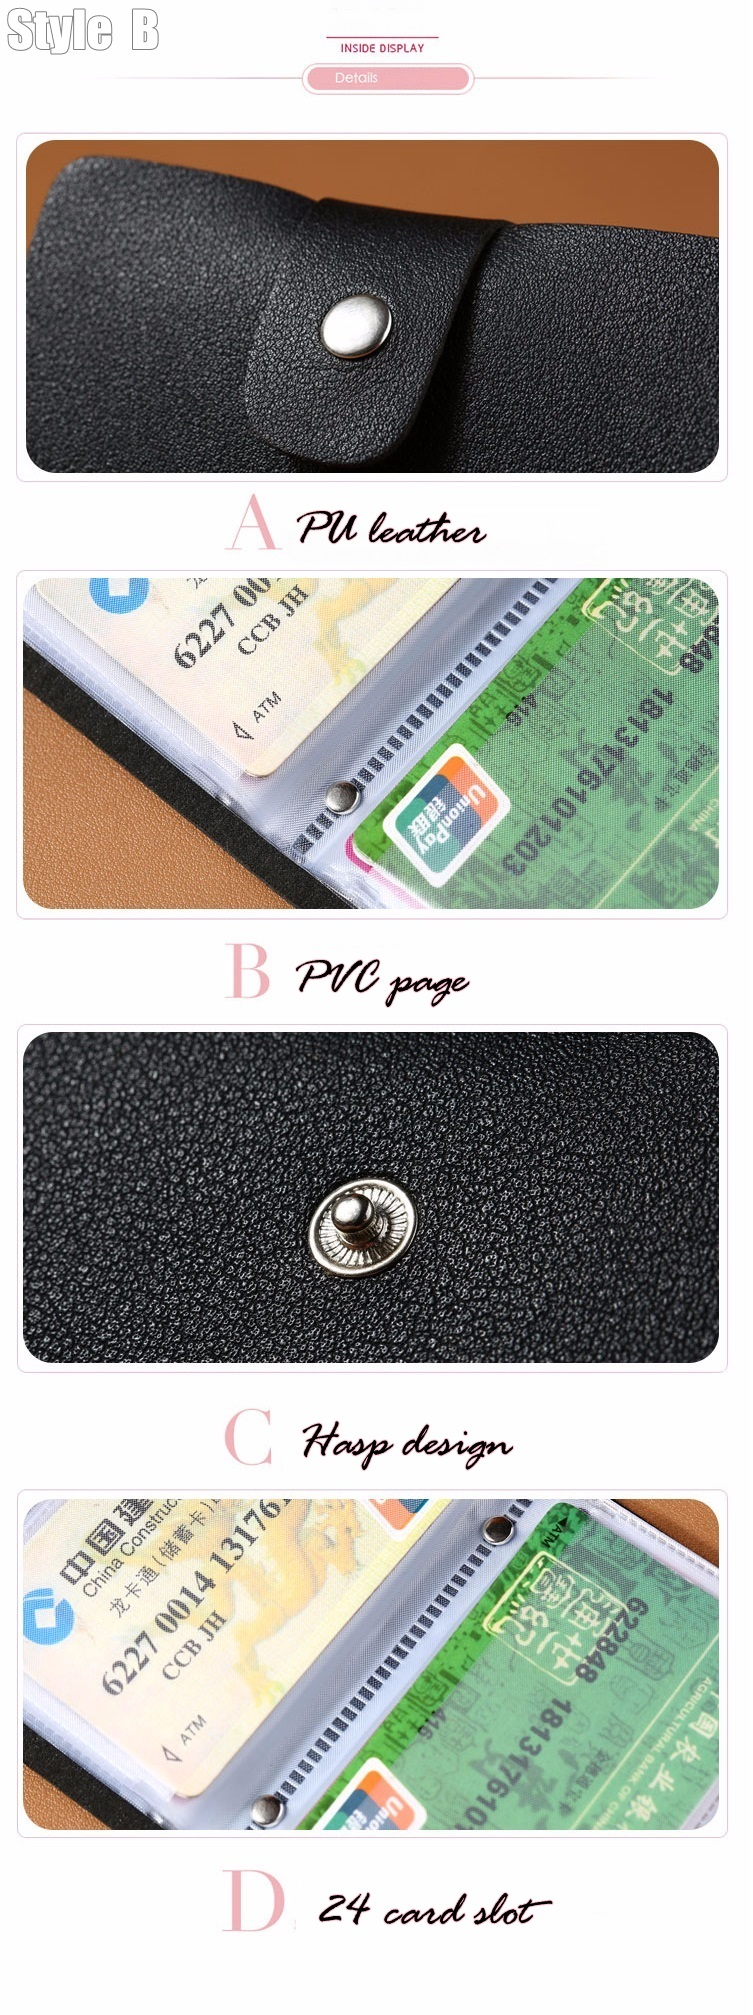 HTB1jngQcNiH3KVjSZPfq6xBiVXaU - New PU Leather Function 24 Bits Card Case Business Card Holder Men Women Credit Passport Card Bag ID Passport Card Wallet H088